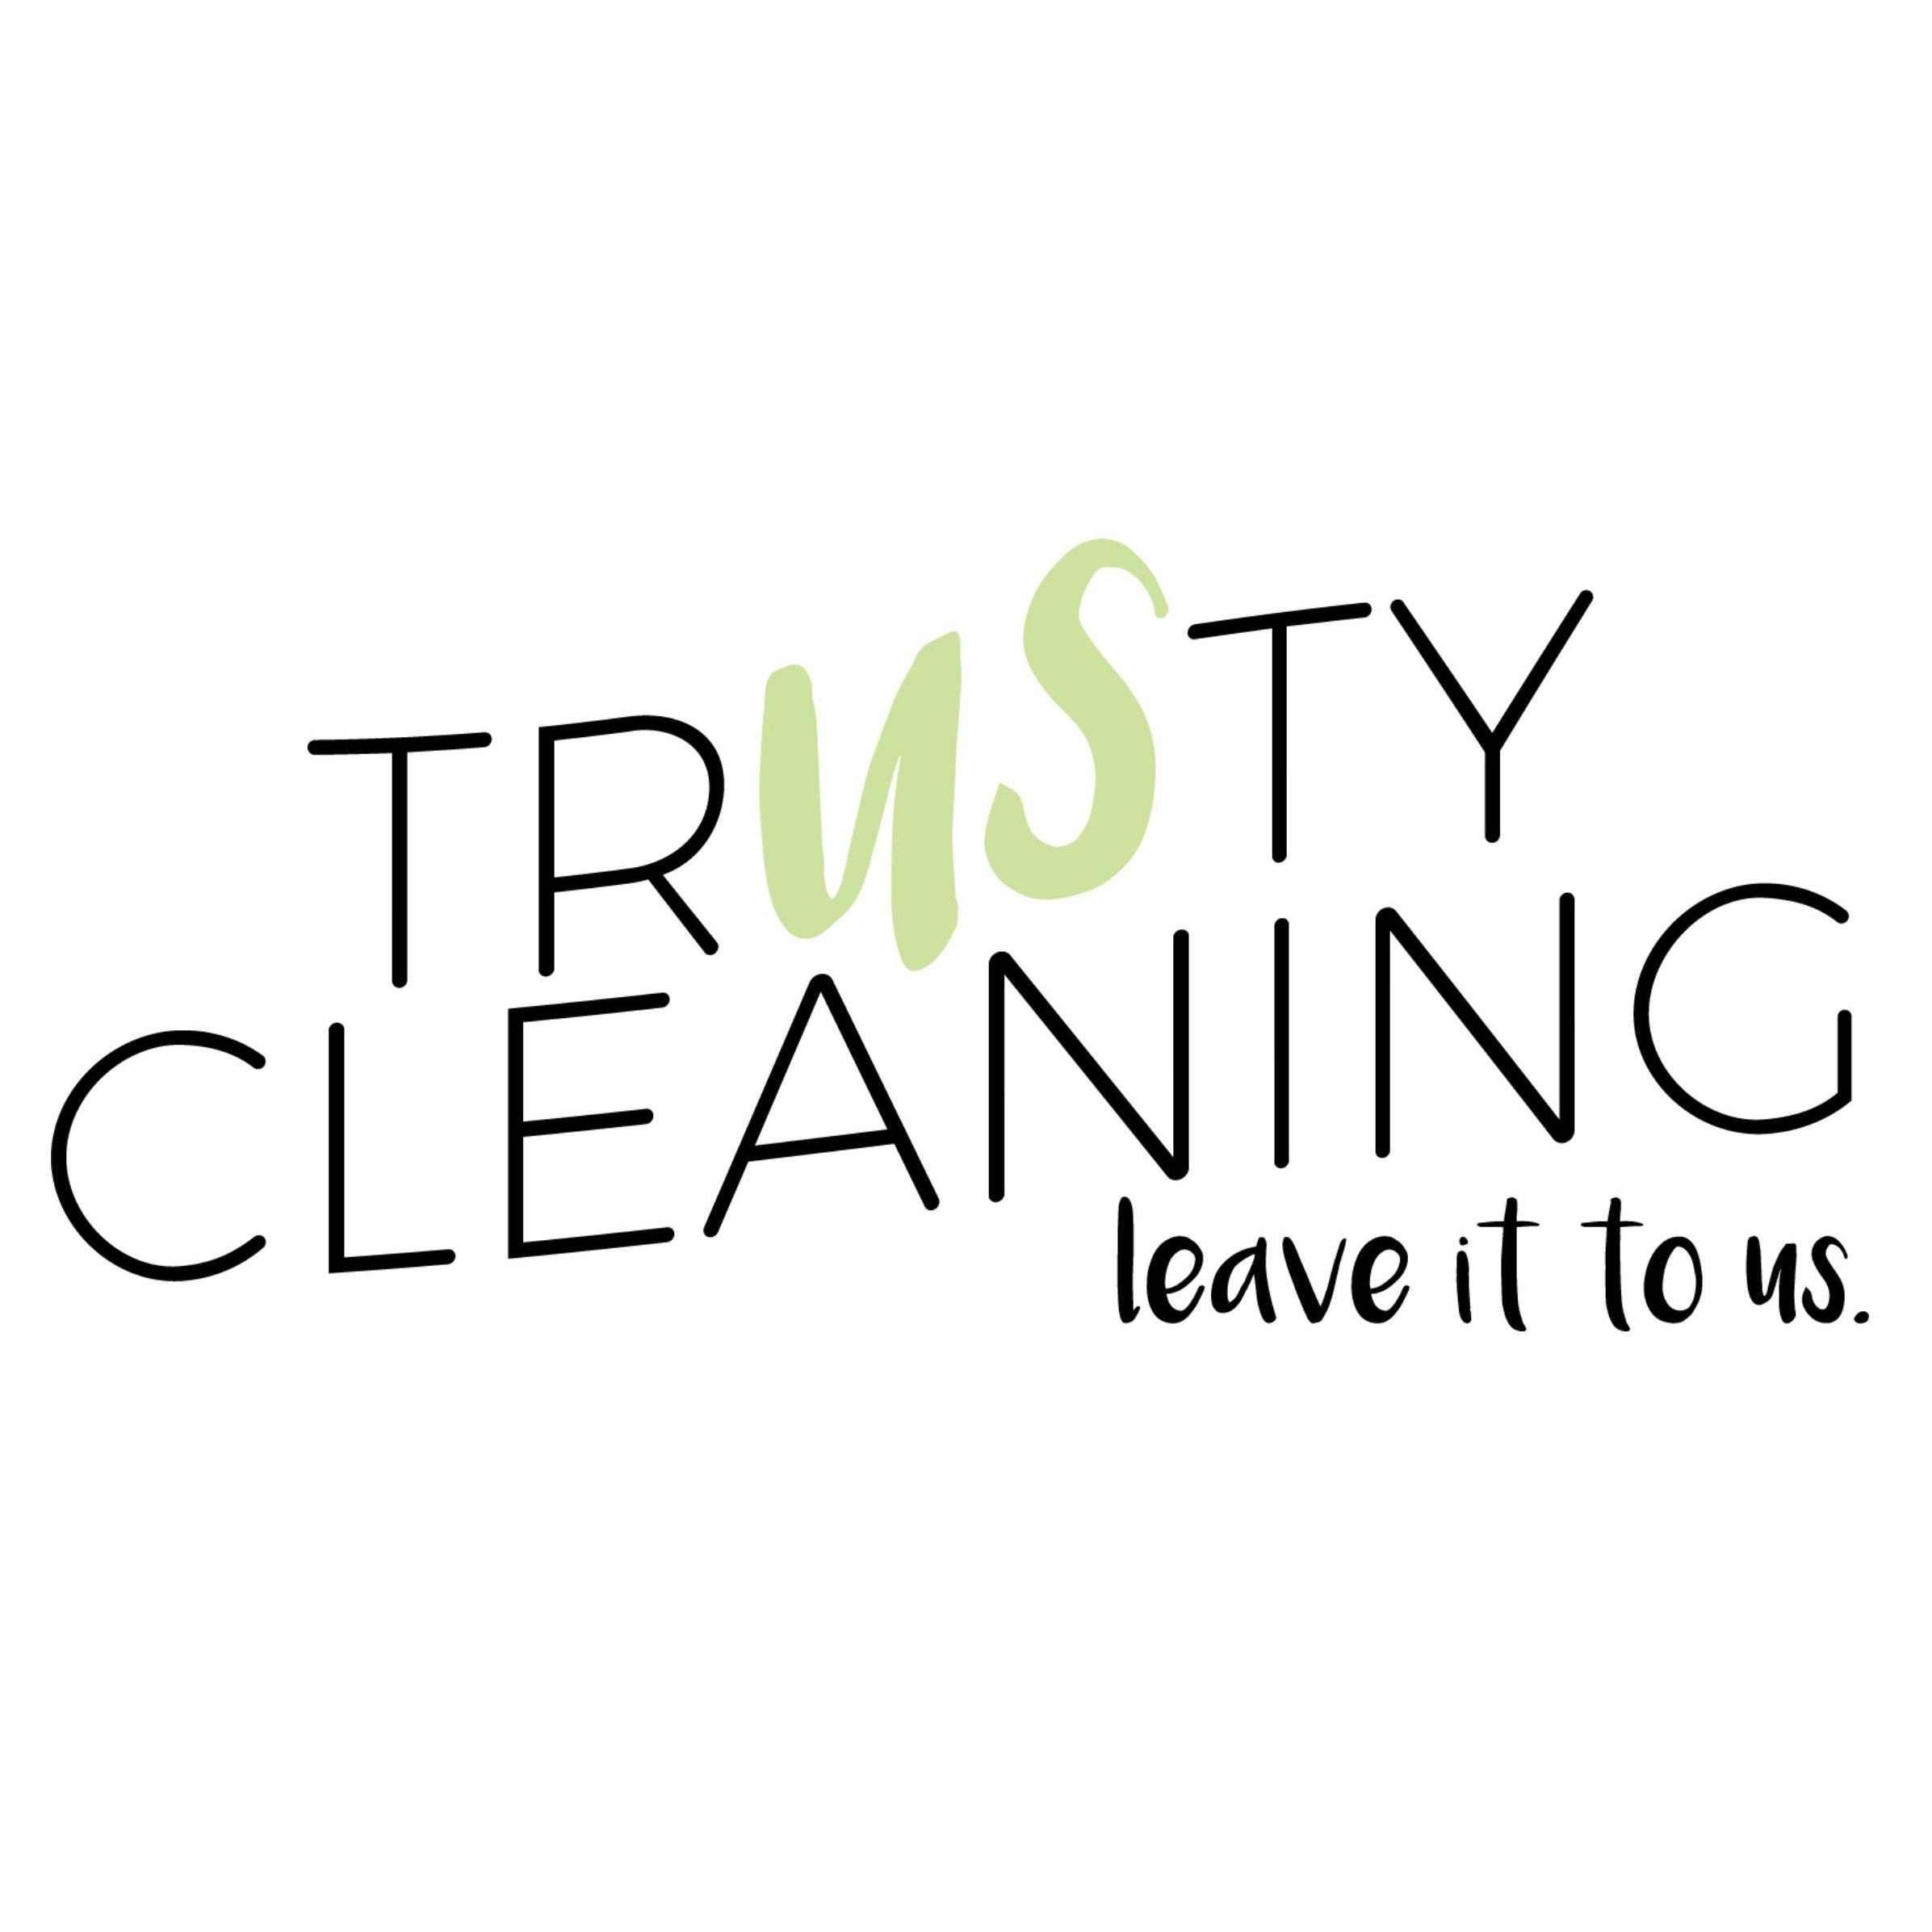 Trusty Cleaning LLC